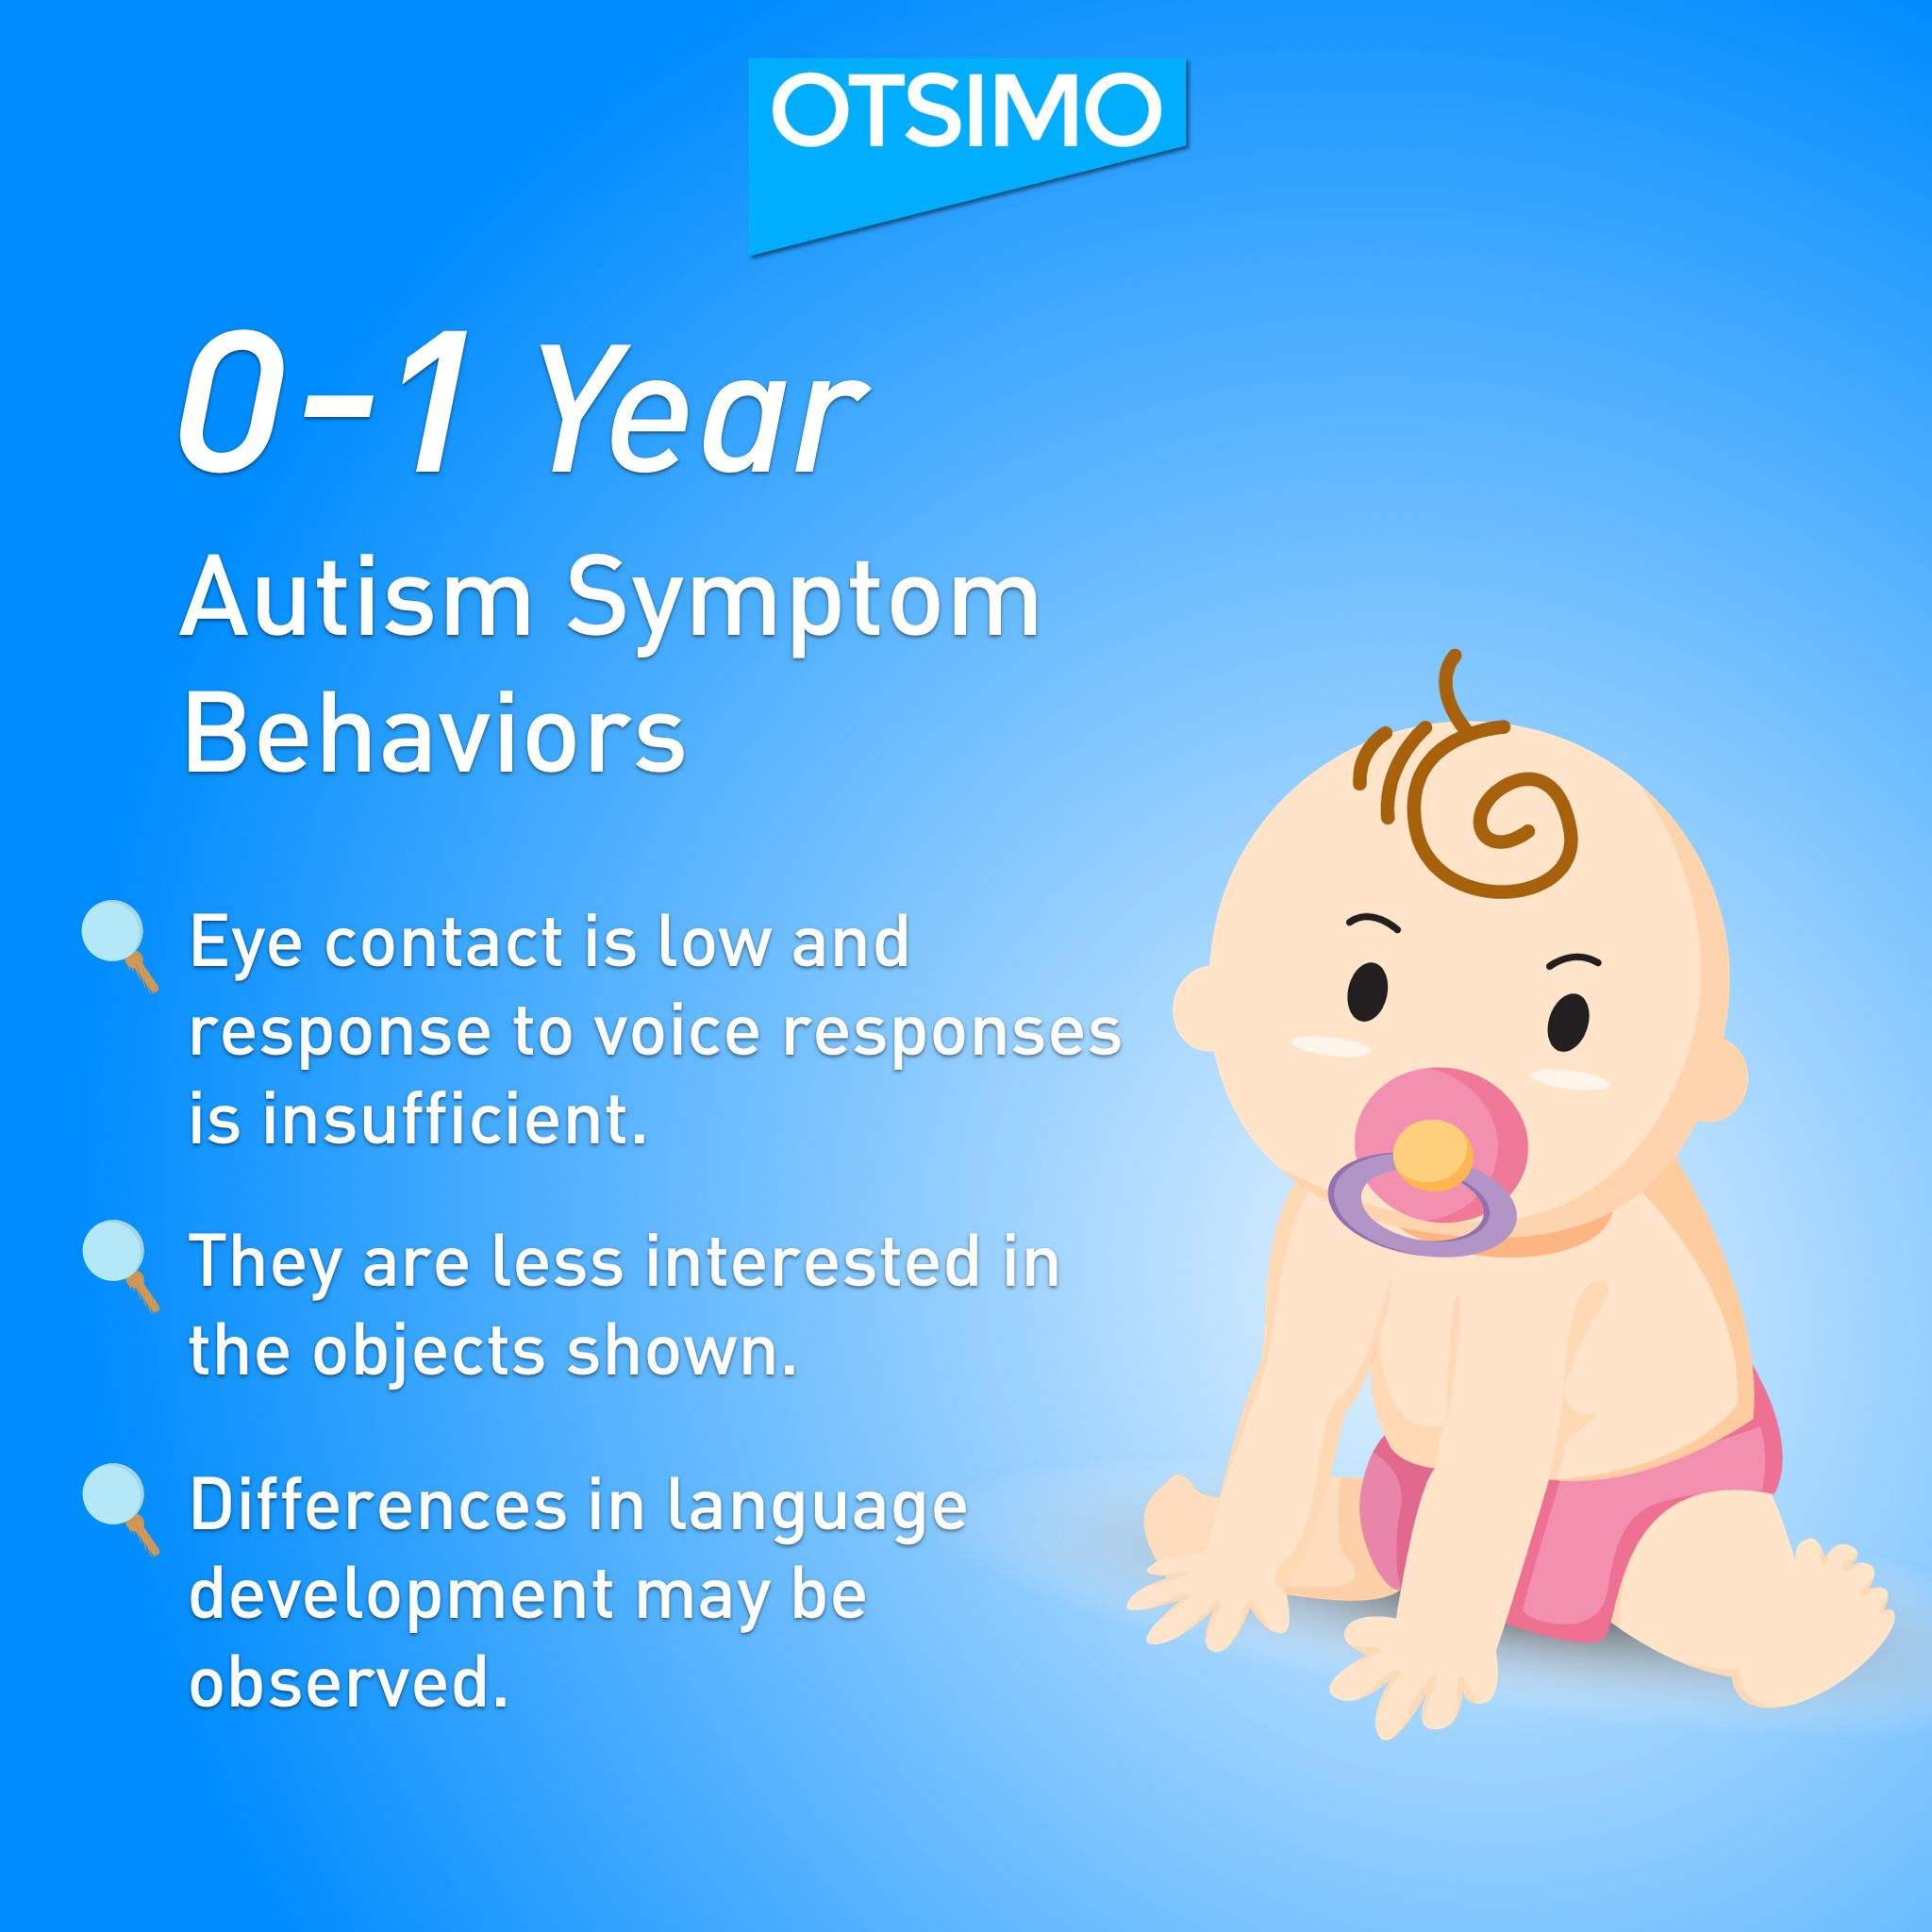 What are the autism signs that can be observed in 0 1 year old